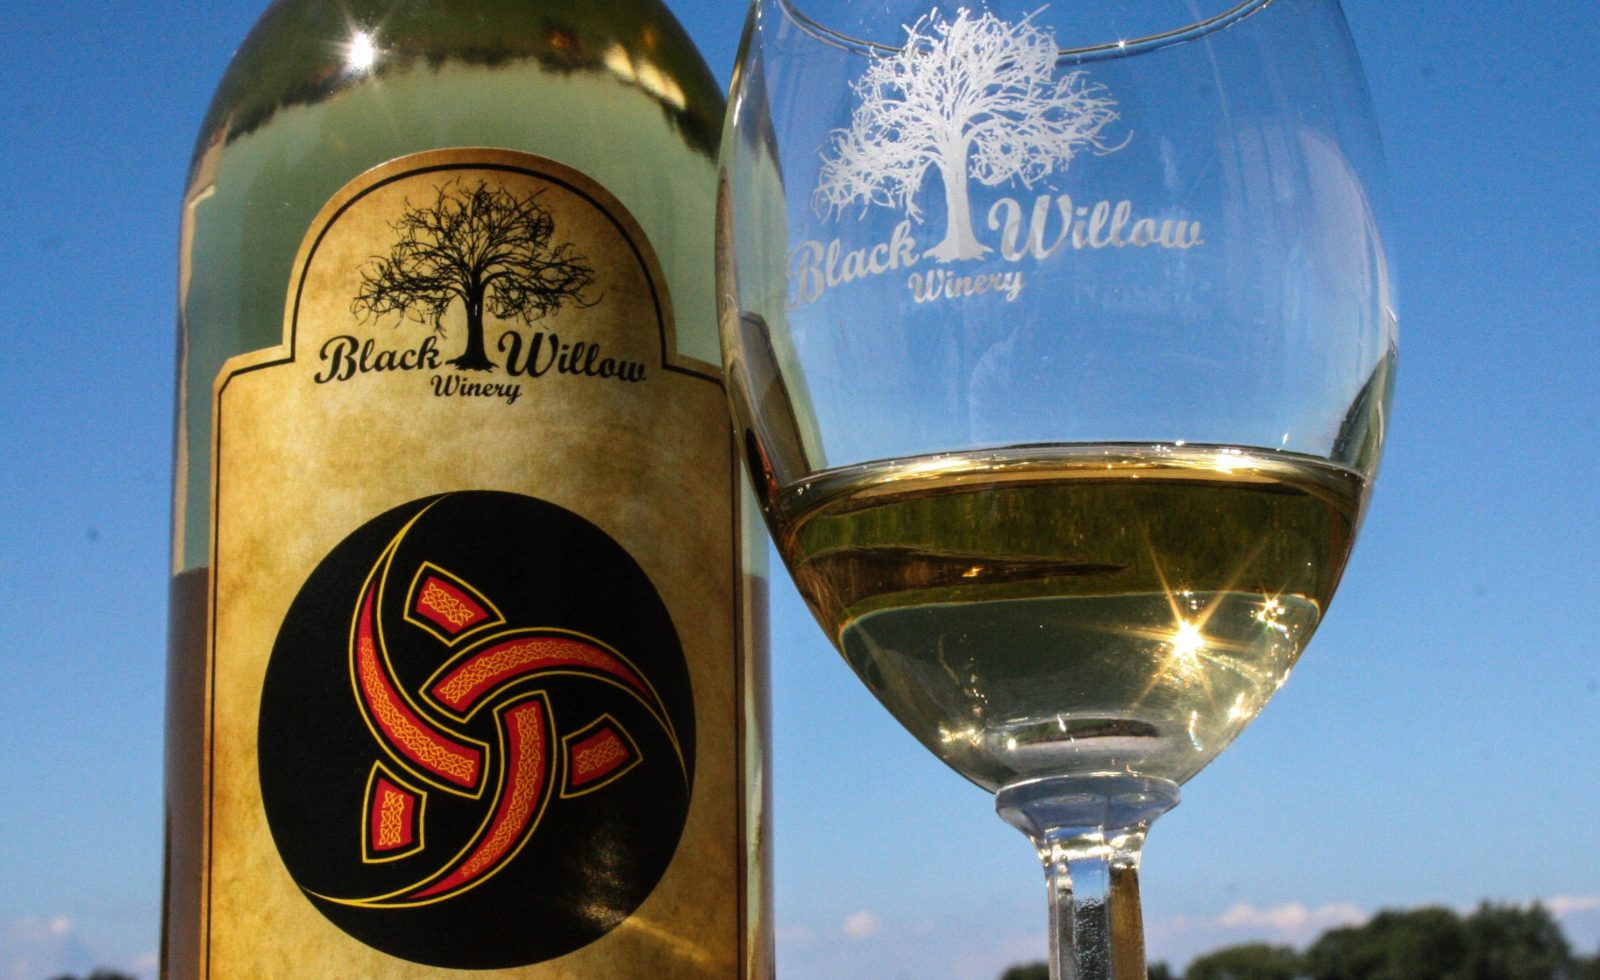 Black Willow Winery is one of the places along the Niagara Wine Trail that serves mead. (Photo supplied by Black Willow Winery)